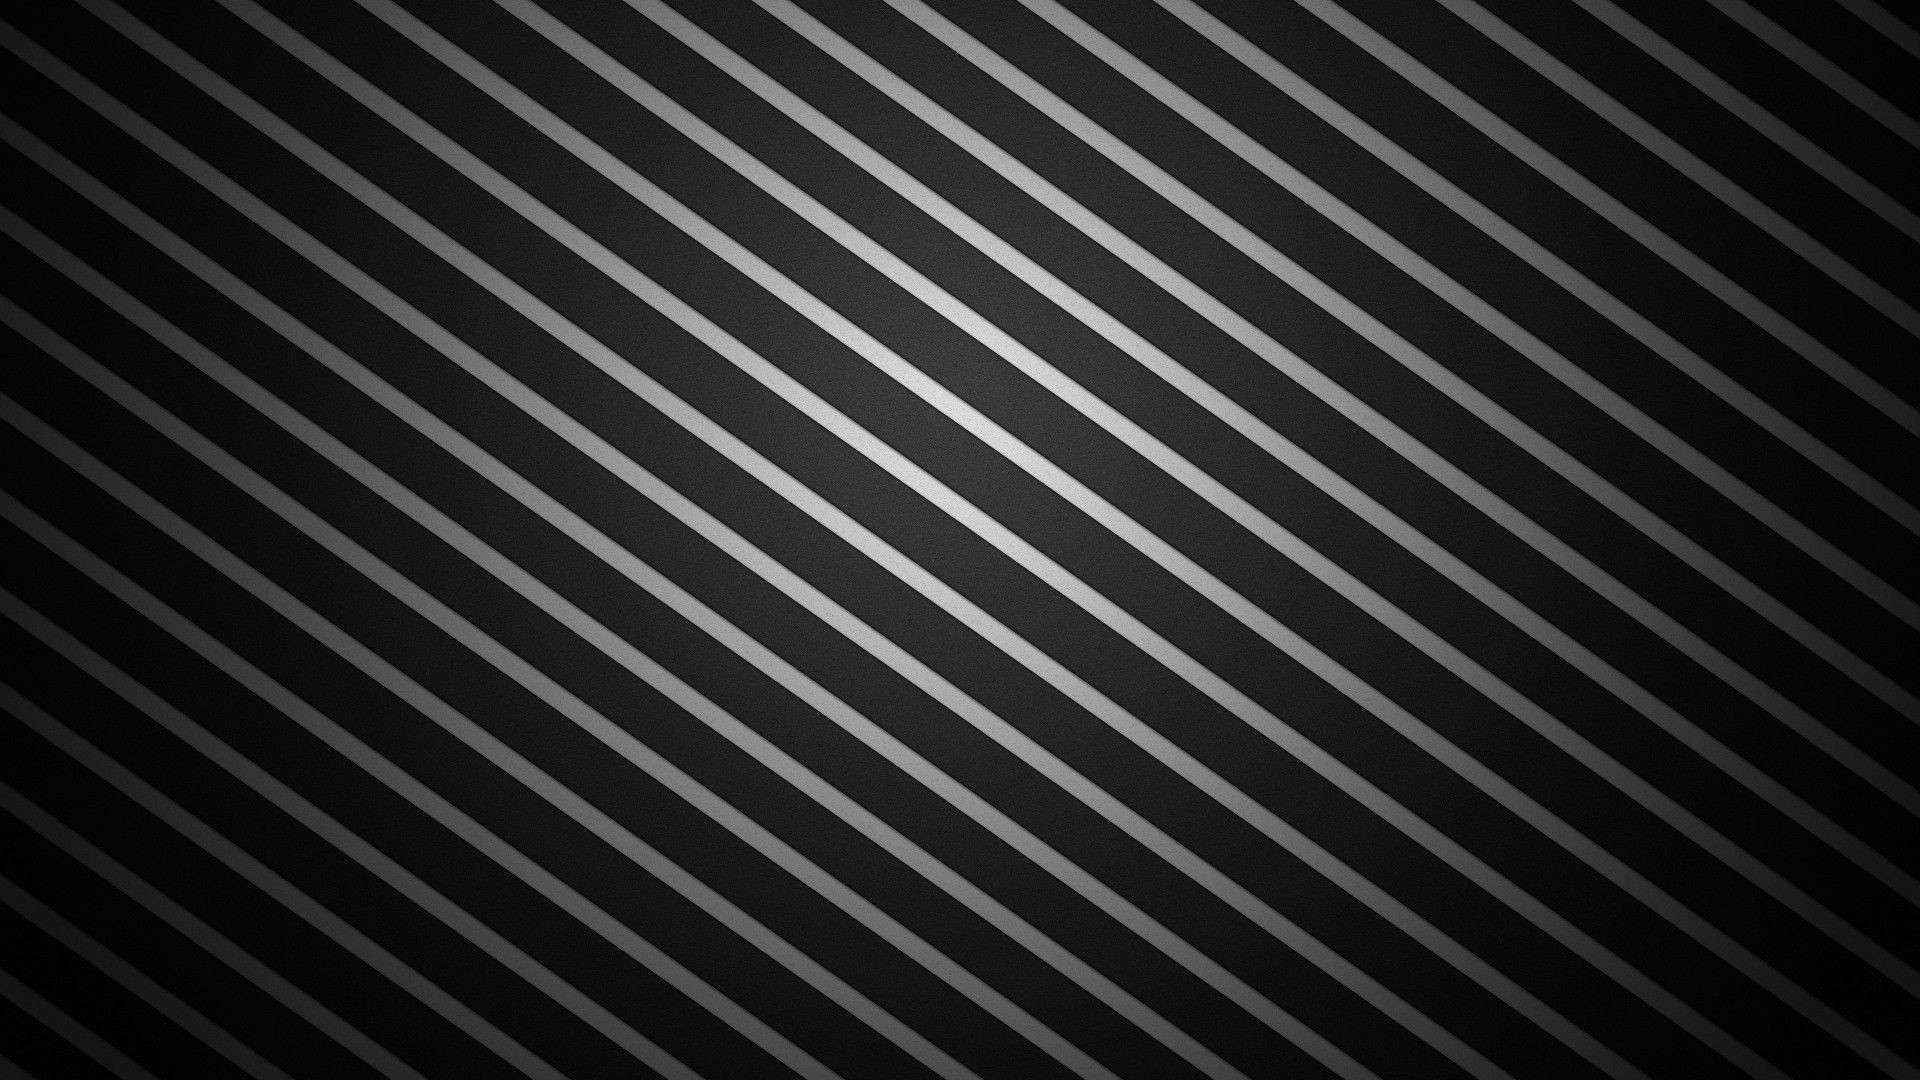 1920x1080 Download Abstract Black White Line Wallpaper